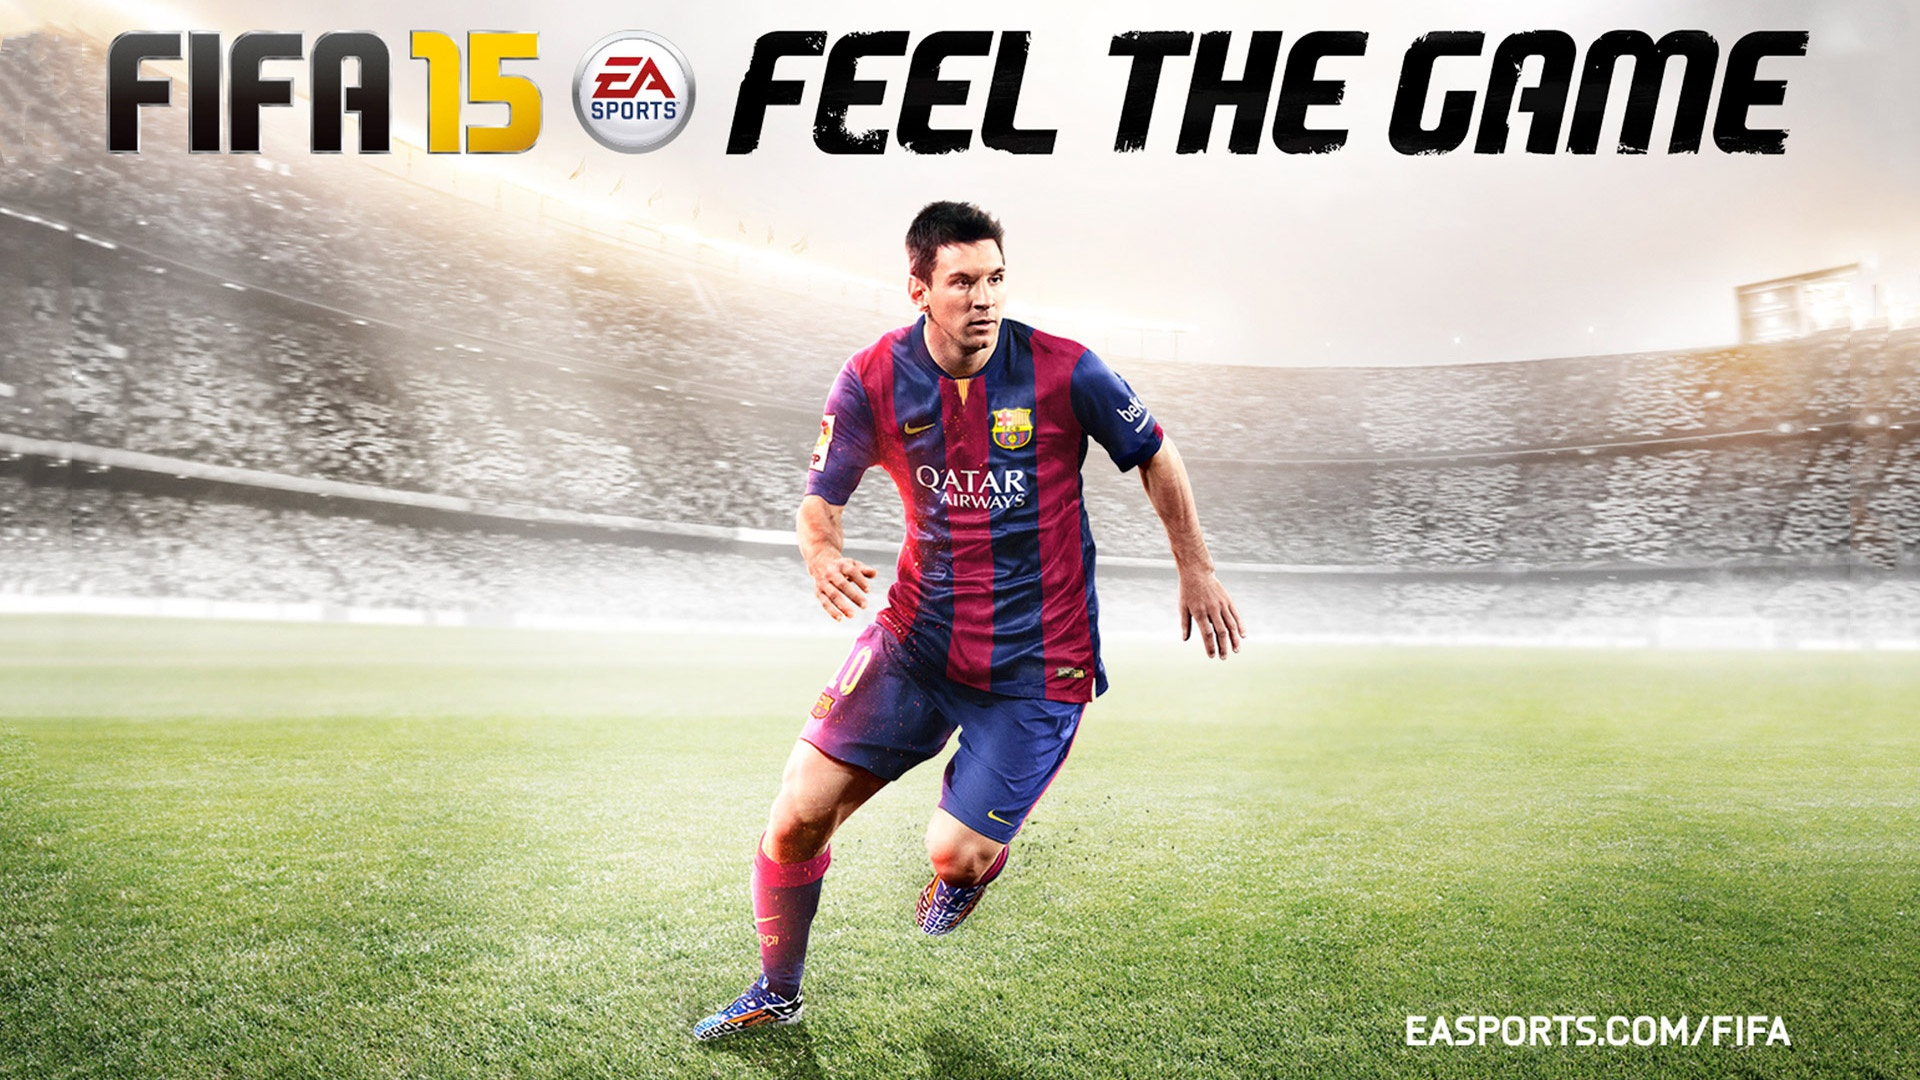 Fifa 15 In Lionel Messi 2014 Wallpapers 1920x1080 701223